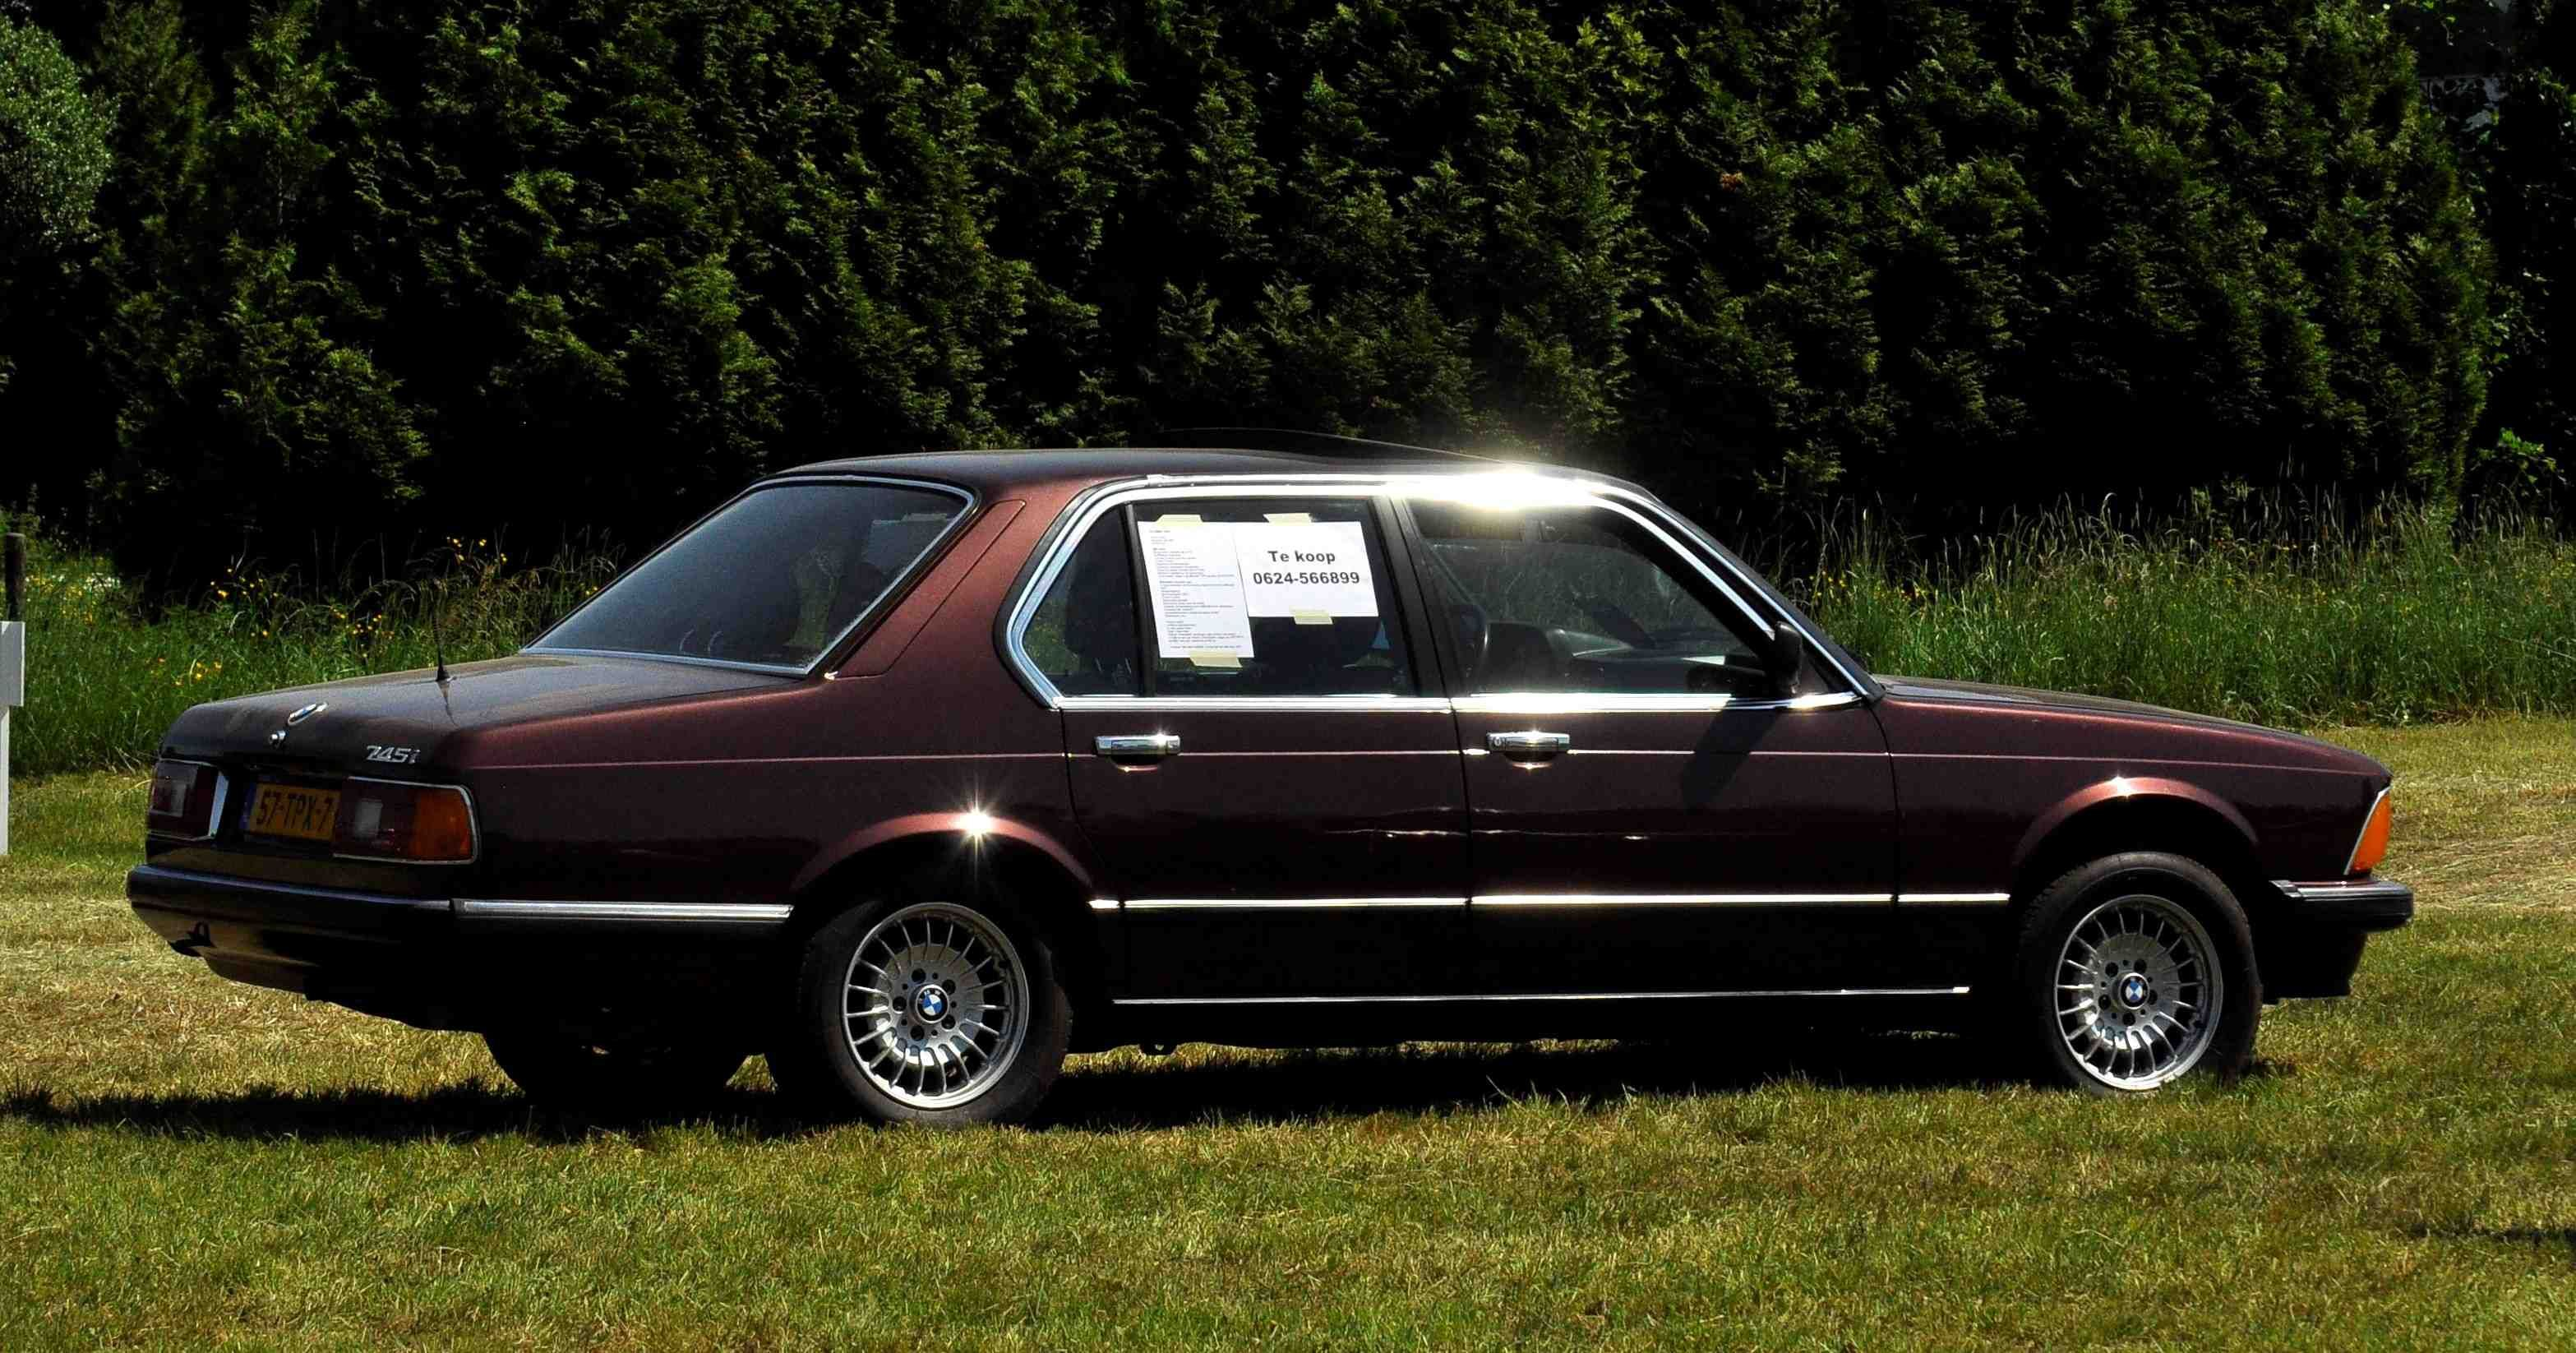 E23 BMW 745i in Burgundy Red. This is mine and it's for